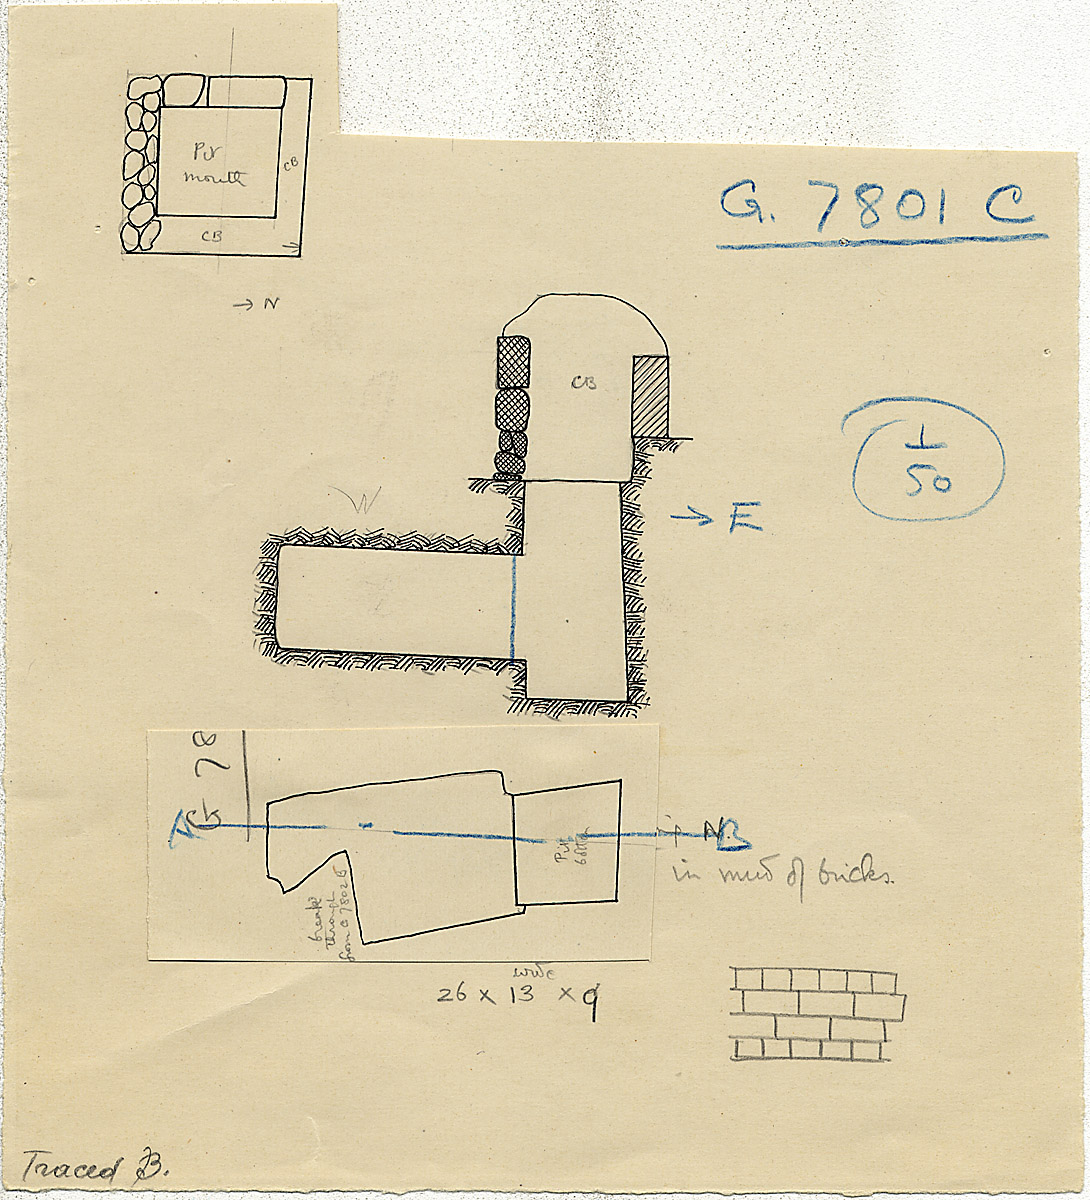 Maps and plans: G 7801, Shaft C